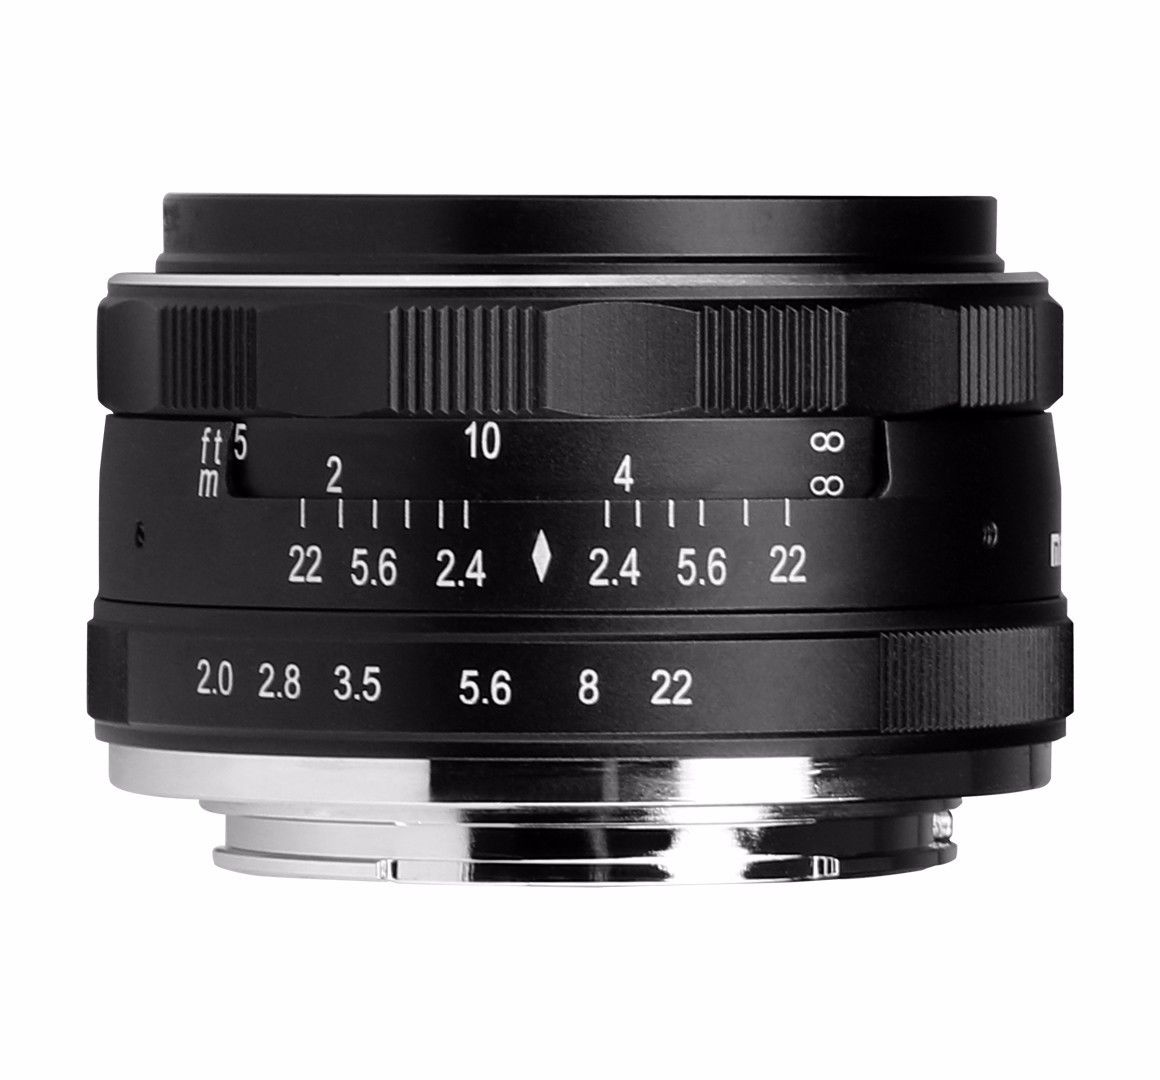 50mm F2.0 Aperture Manual Focus Lens APS-C for Nikon1 V1/J1/V2/J2/J3/V3/S1/S2 camera meke meike mk 35mm f1 7 large aperture manual focus lens for nikon1 v1 v2 v3 s1 s2 j1 j2 j3 j4 j5 cameras